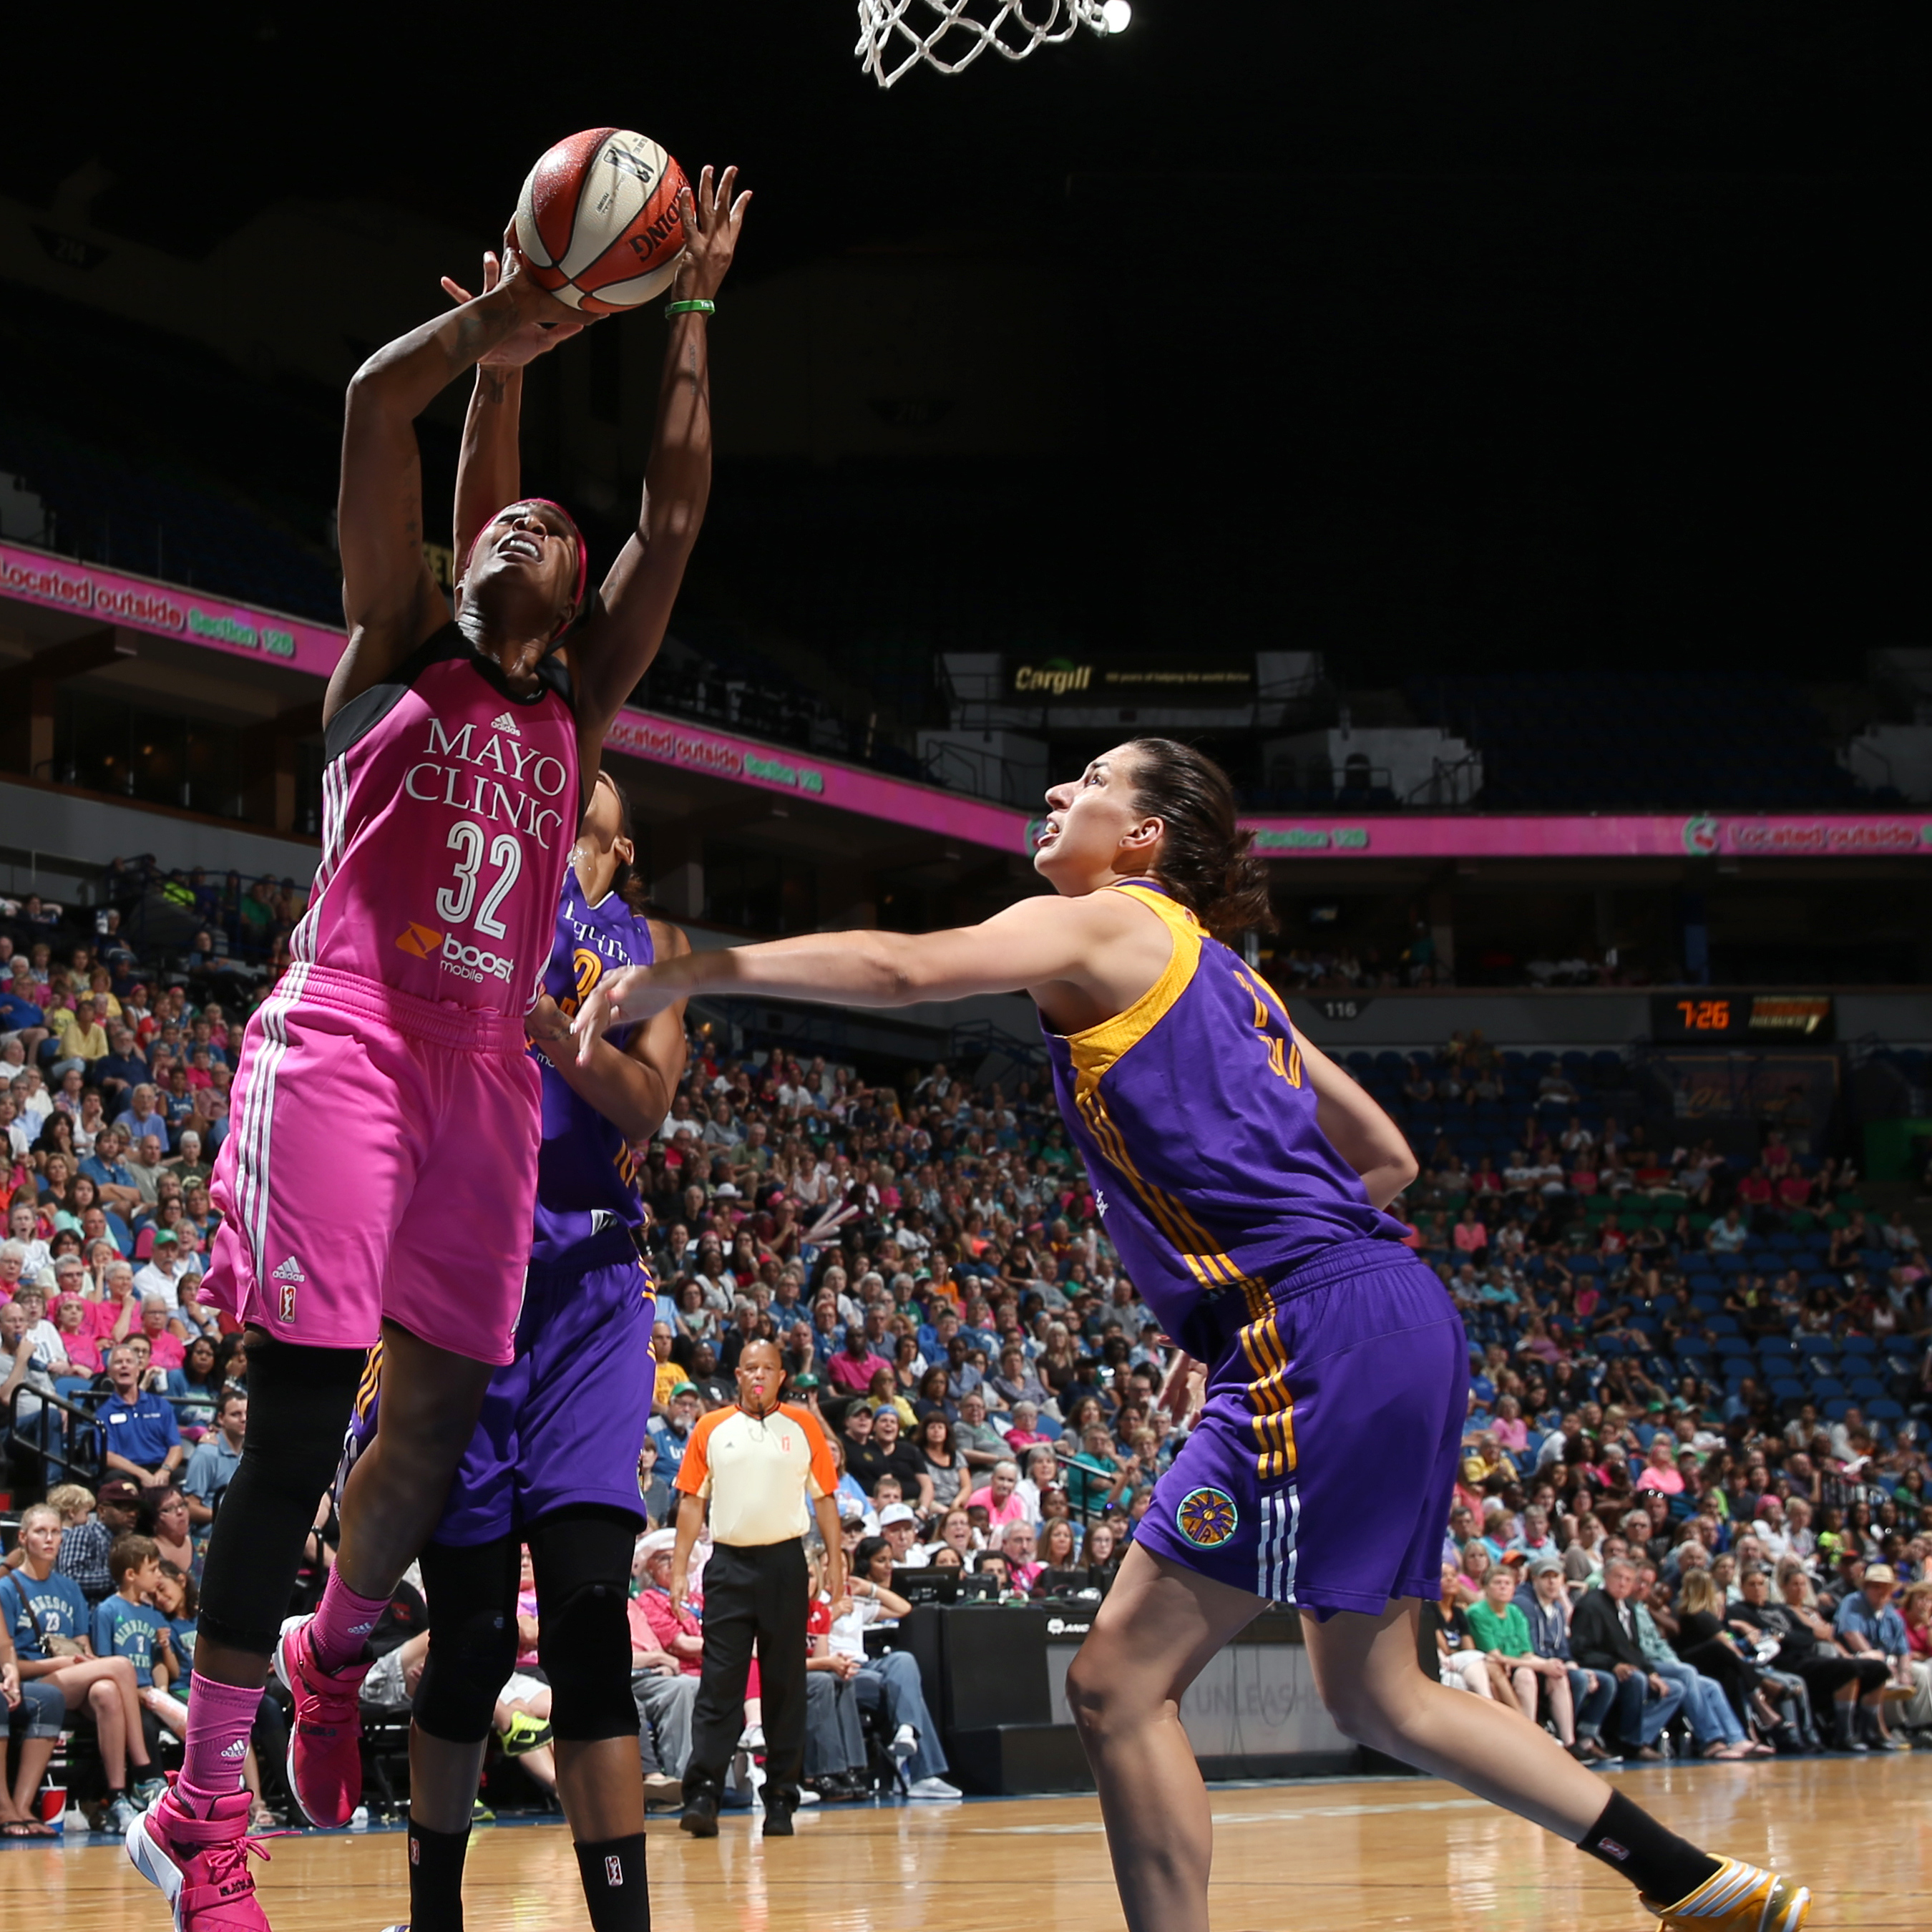 Lynx forward Rebekkah Brunson had a solid game against the Sparks, finishing with 10 points, six rebounds and two steals in the Lynx victory.